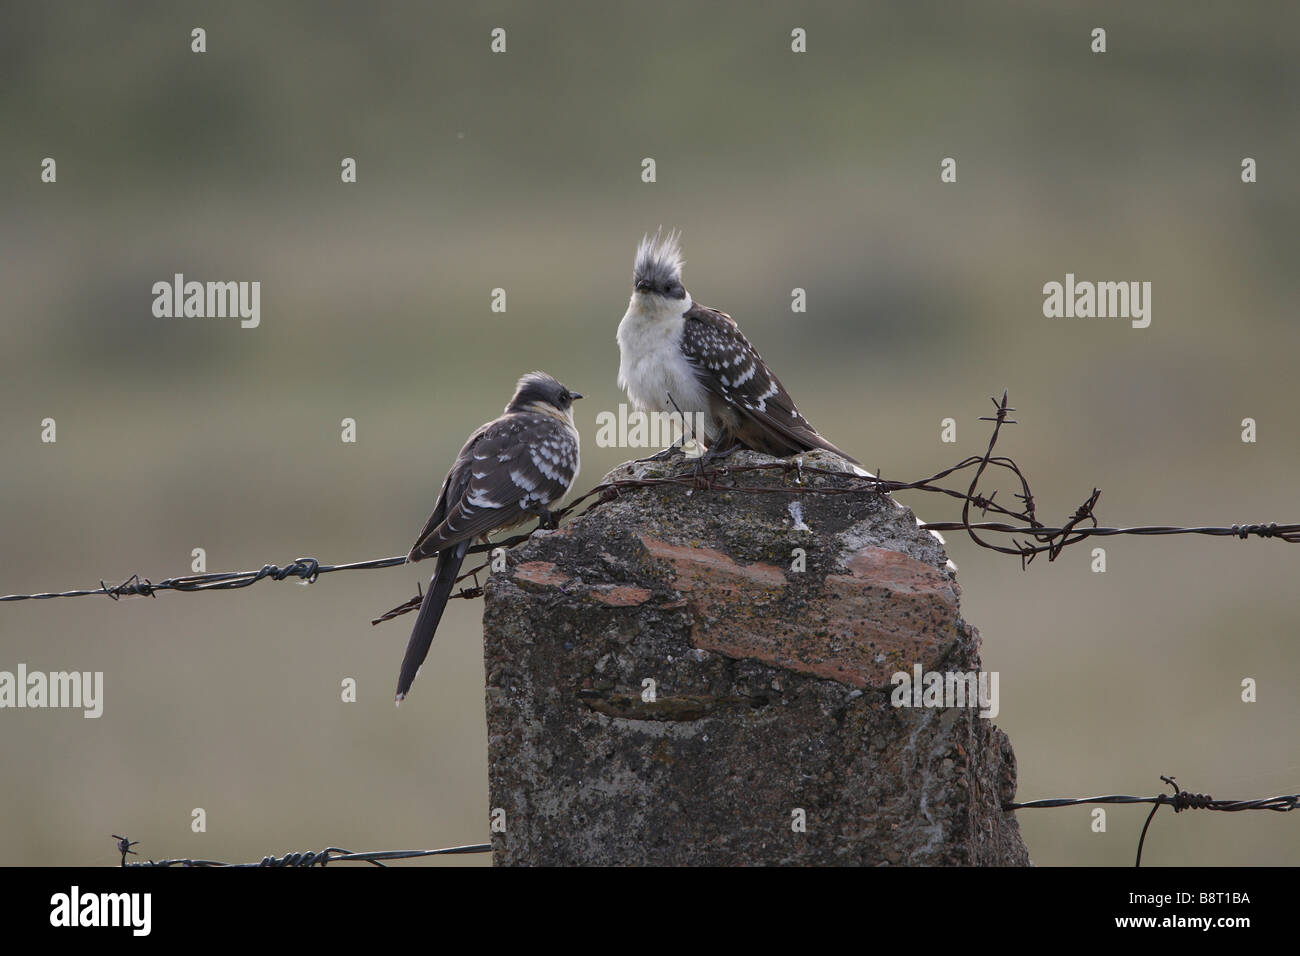 Pair of Great Spotted Cuckoos together in Spain - Stock Image